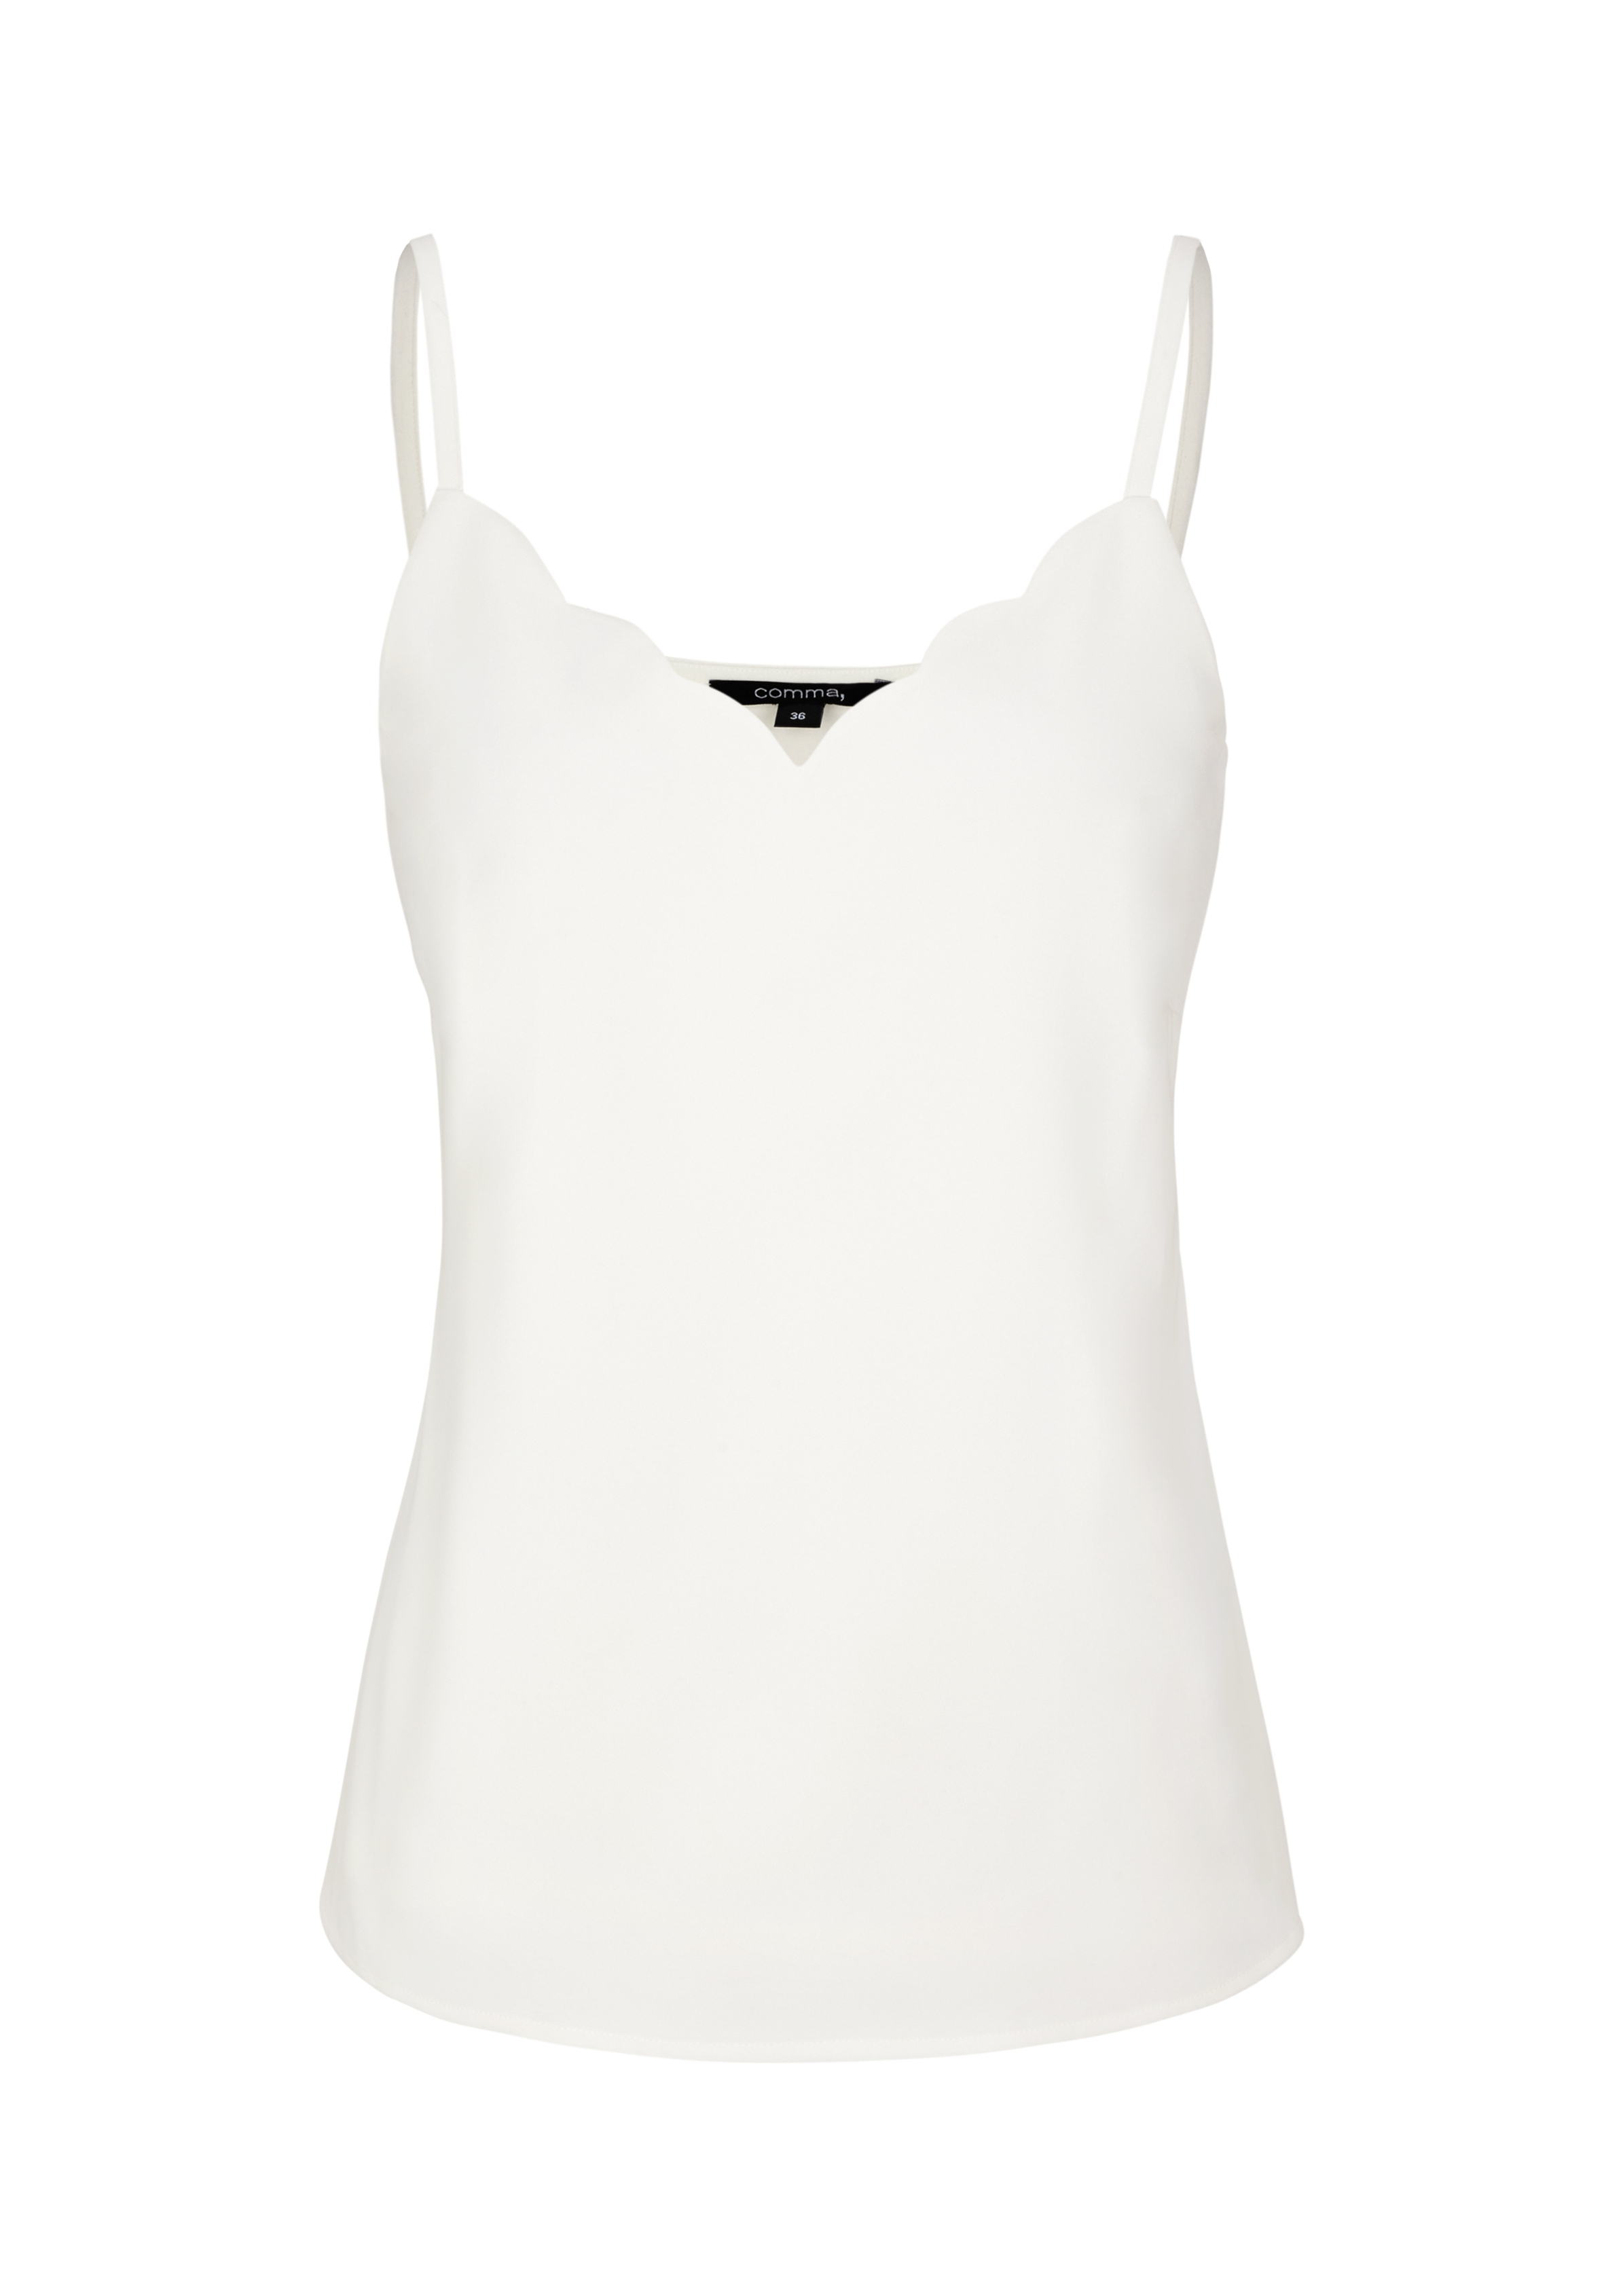 Top | Bekleidung > Tops > Sonstige Tops | Weiß | 95% polyester -  5% elasthan | comma